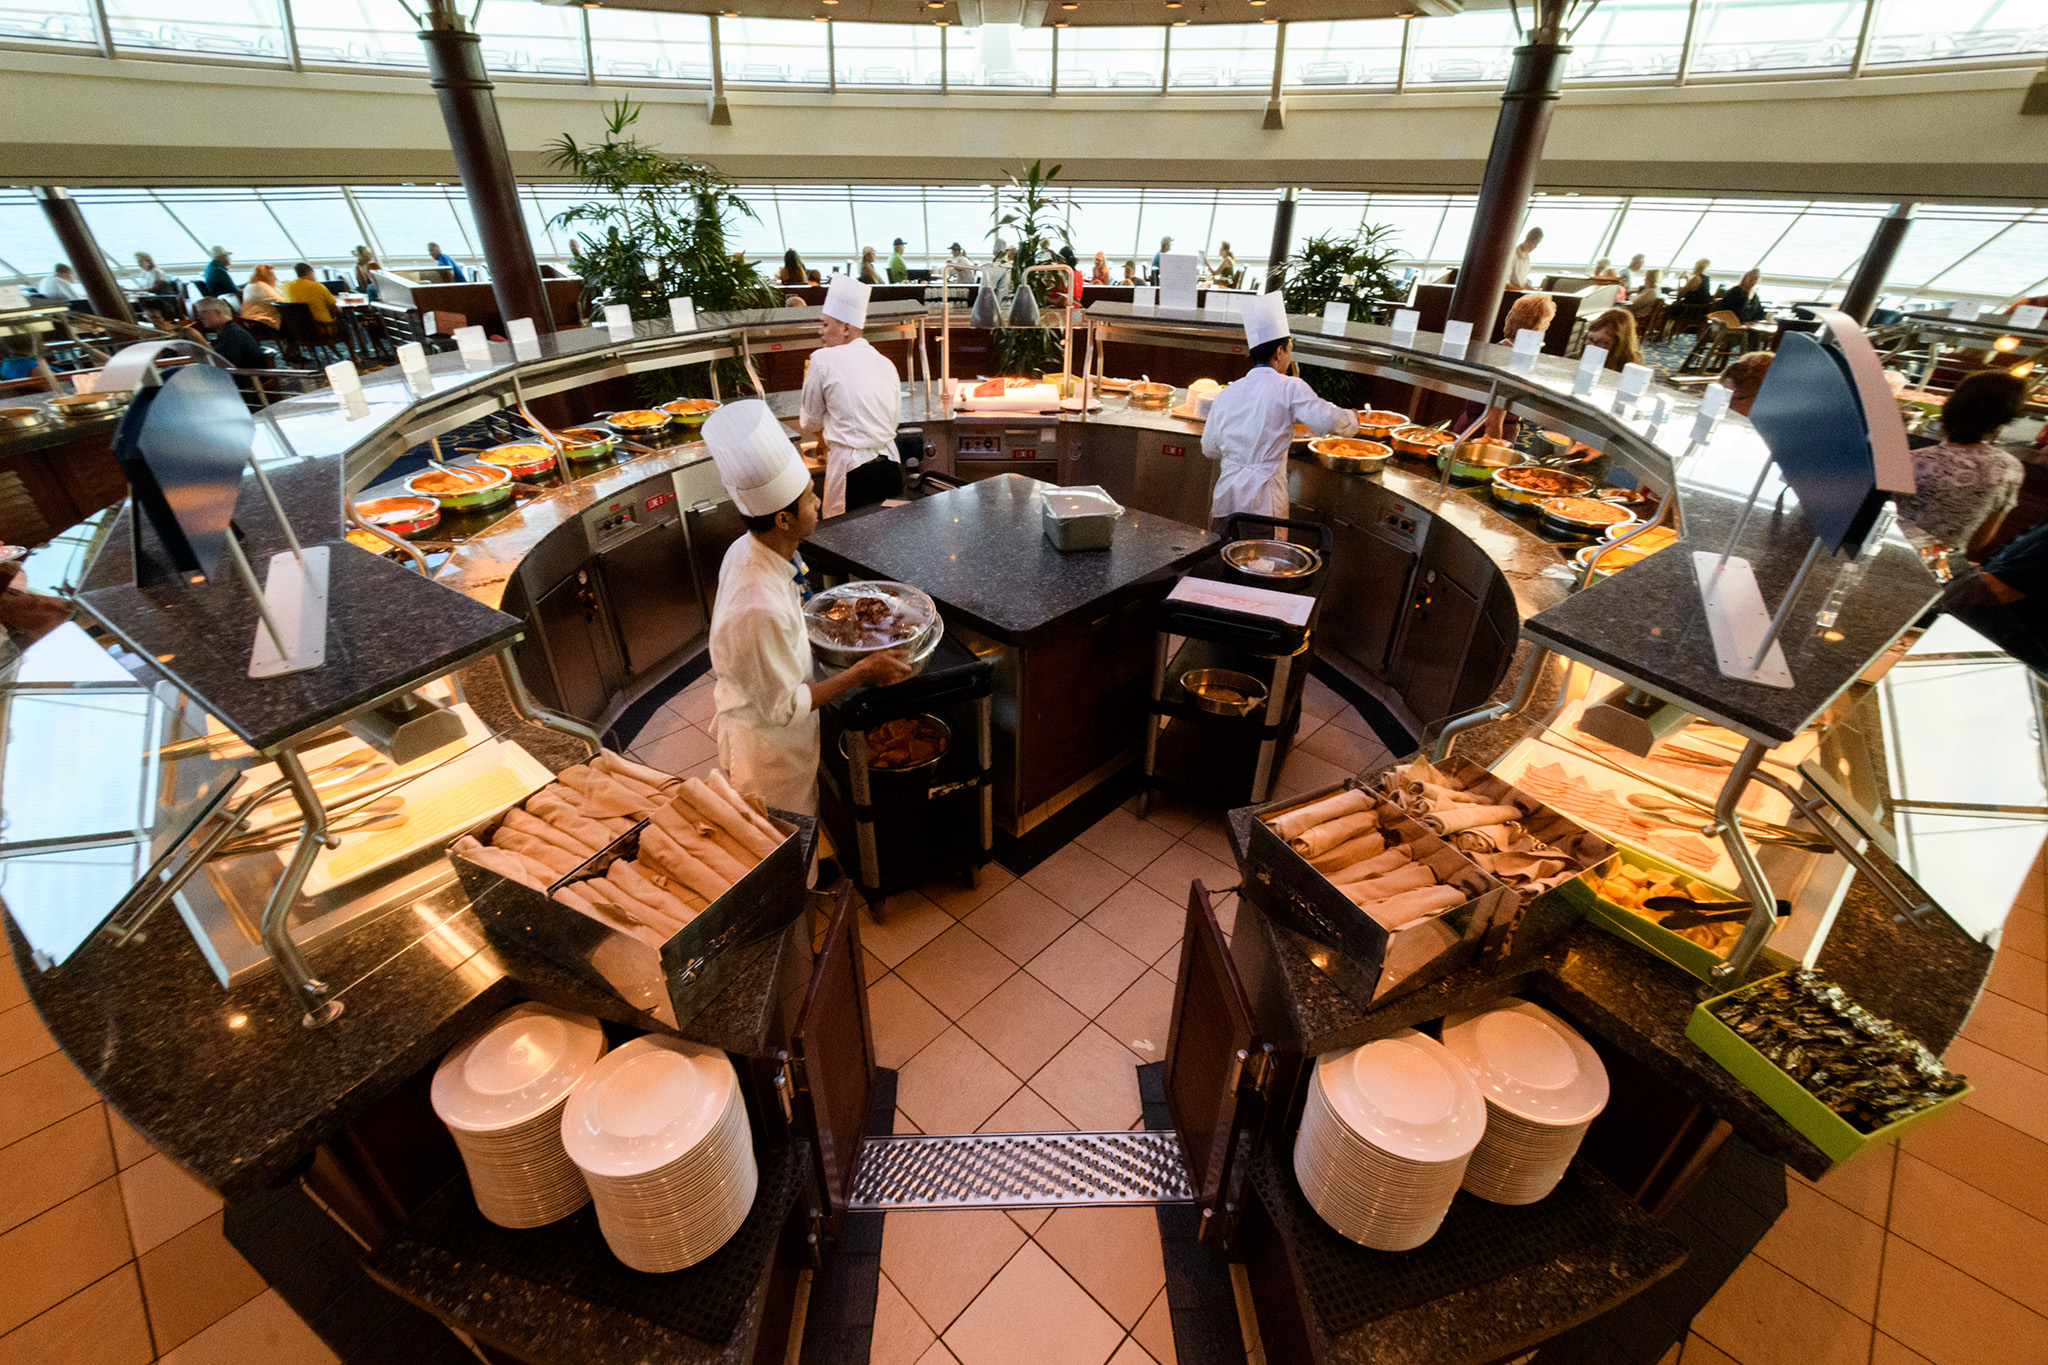 The circular style of the forward buffet means lots of walking in circles, but also lots of room for plenty of food!